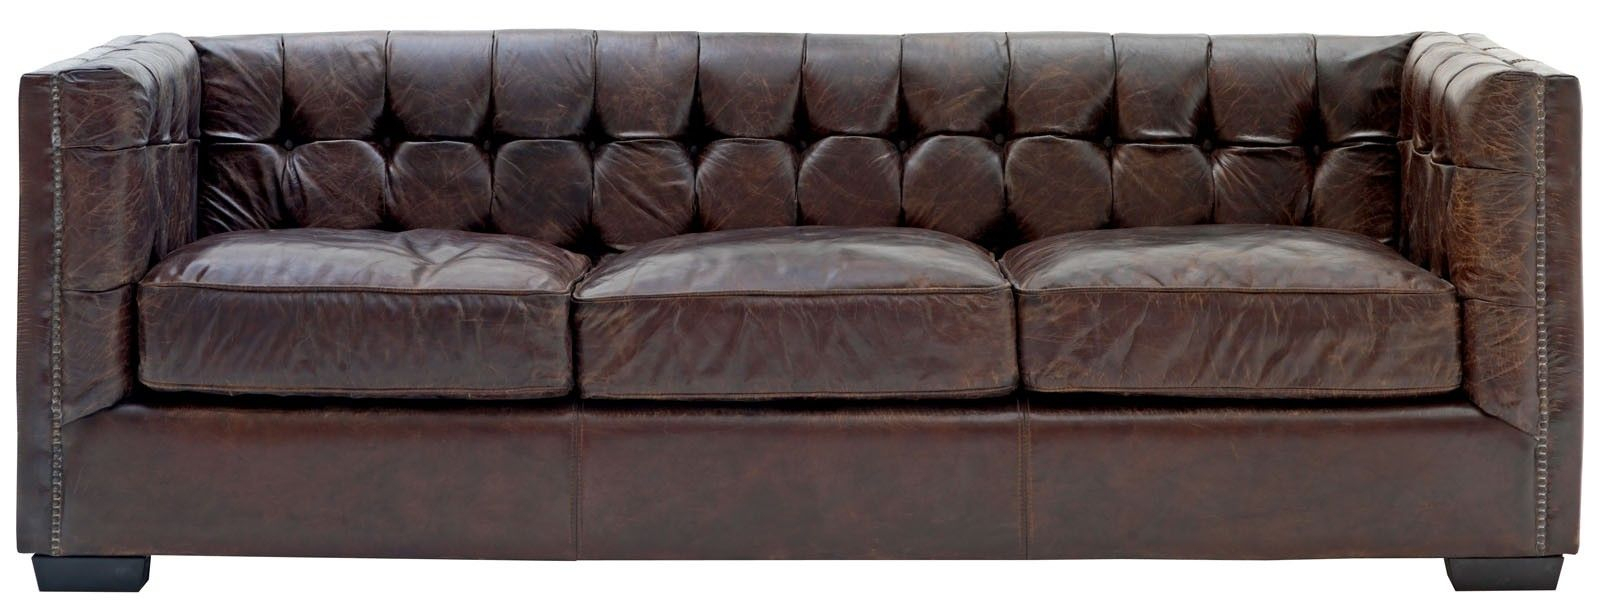 Armstrong Sofa Leather | Furniture Pieces | Pinterest | Sofa With Regard To Andrew Leather Sofa Chairs (Image 14 of 25)